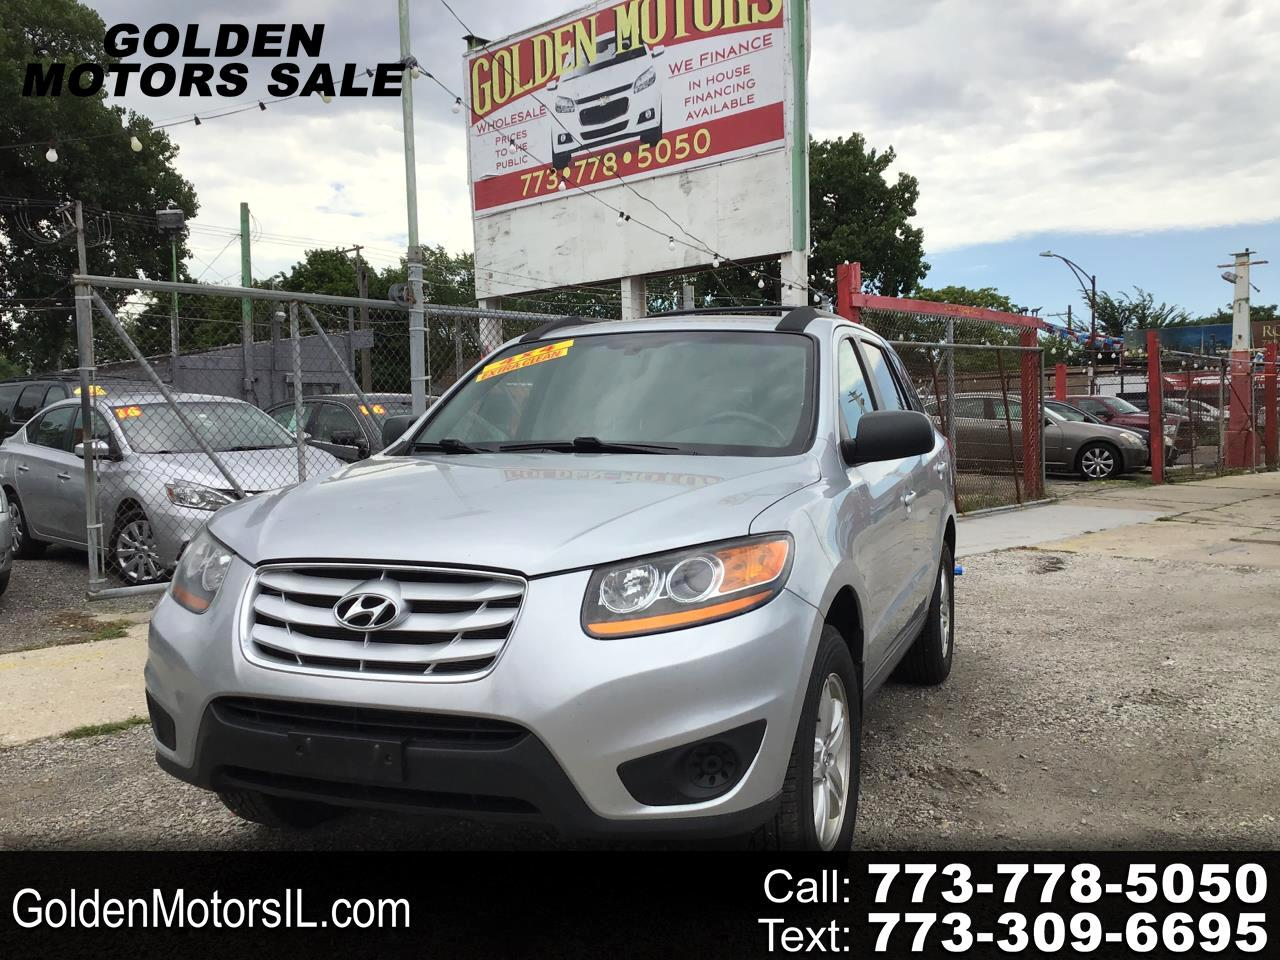 Used 2010 Hyundai Santa Fe Gls 2 4 Awd For Sale In Chicago Il 60636 Golden Motors Sale